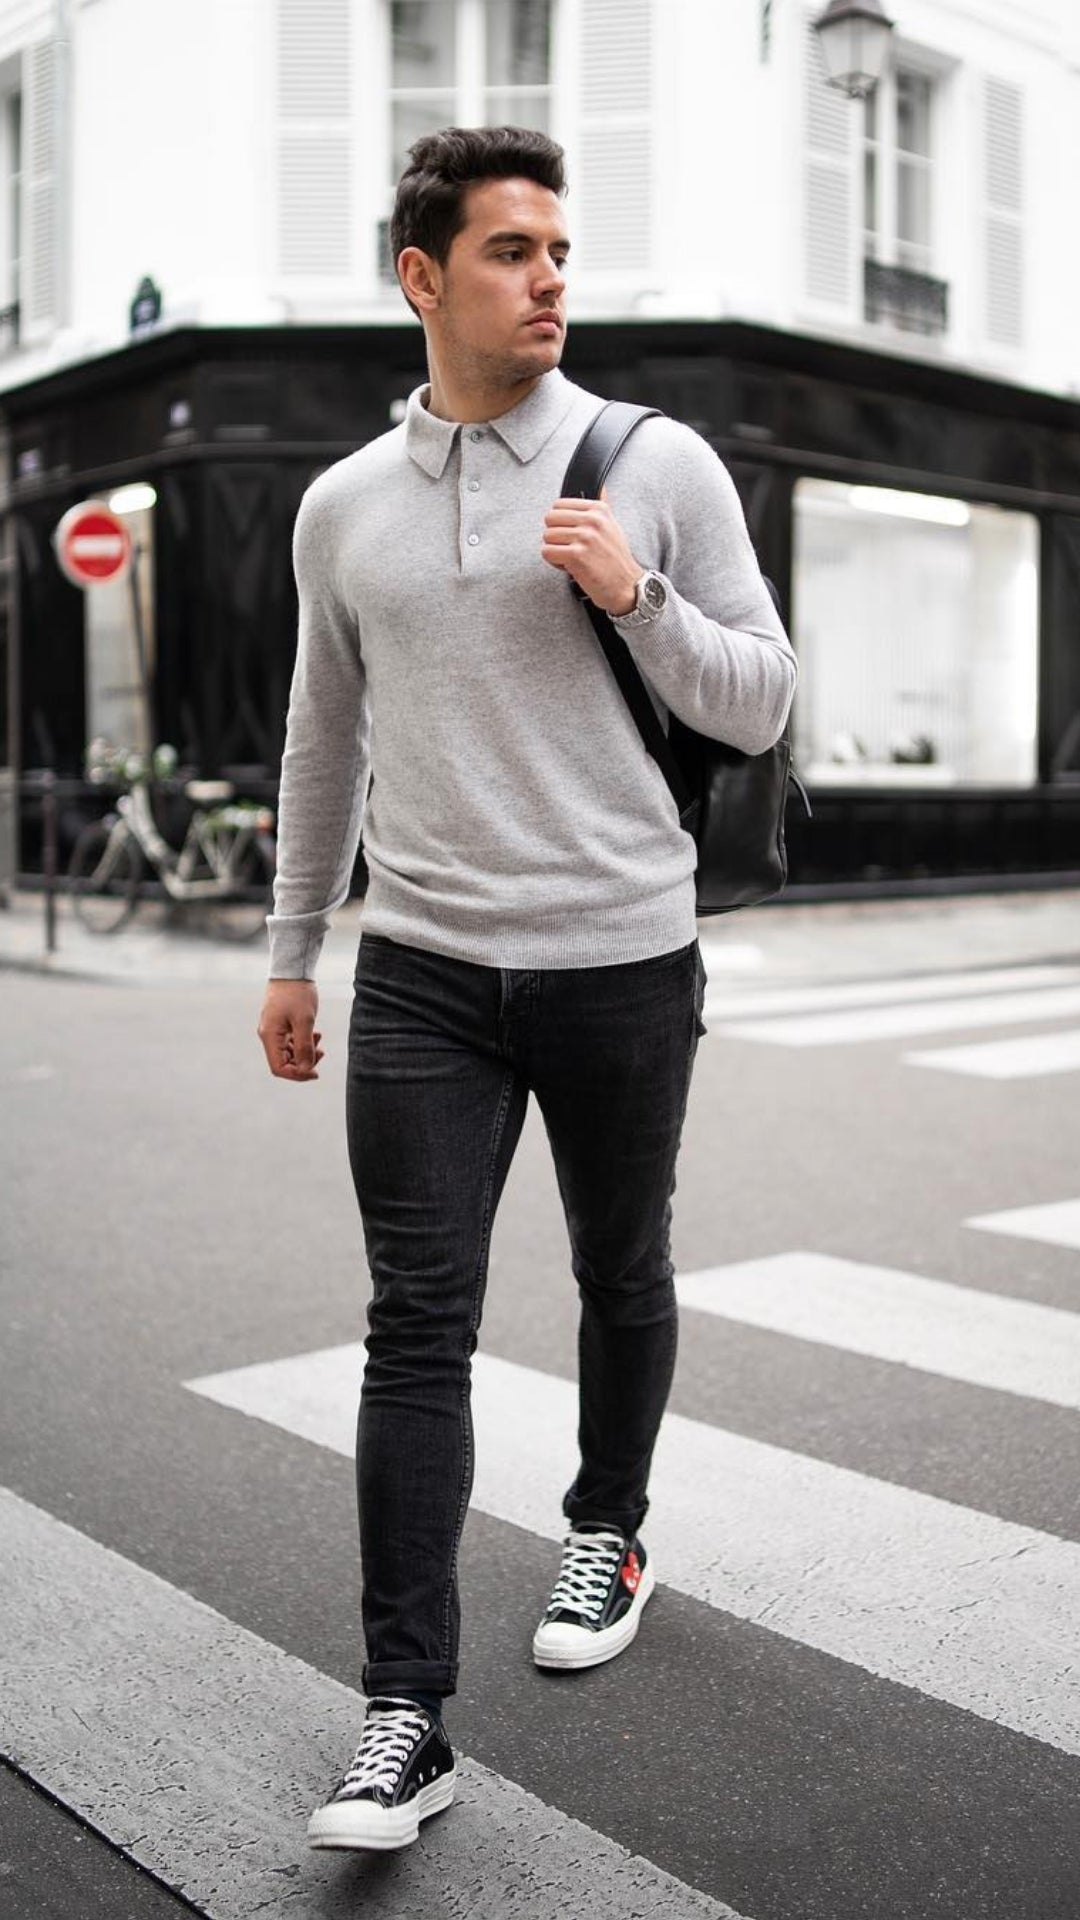 Monochrome Dressing Style For Men - 5 Outfits To Try #monochrome #outfits #mensfashion #streetstyle